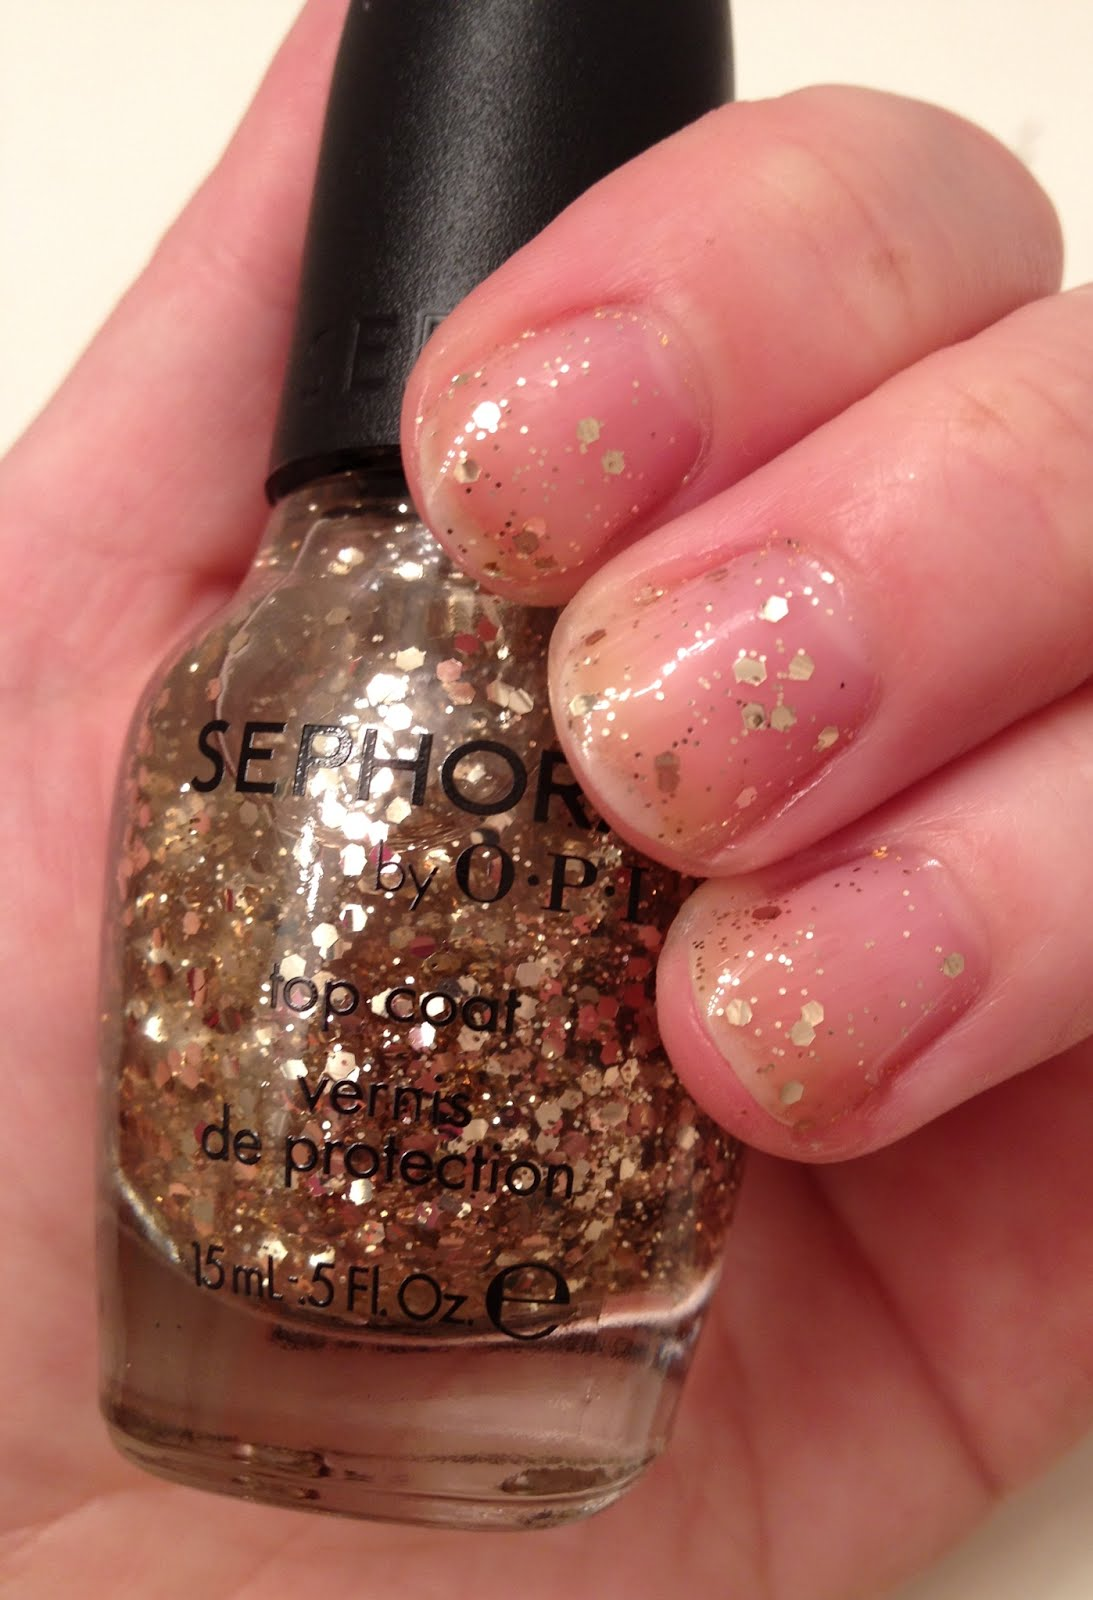 The Beauty of Life: Sephora by OPI Gold Top Coat Swatches